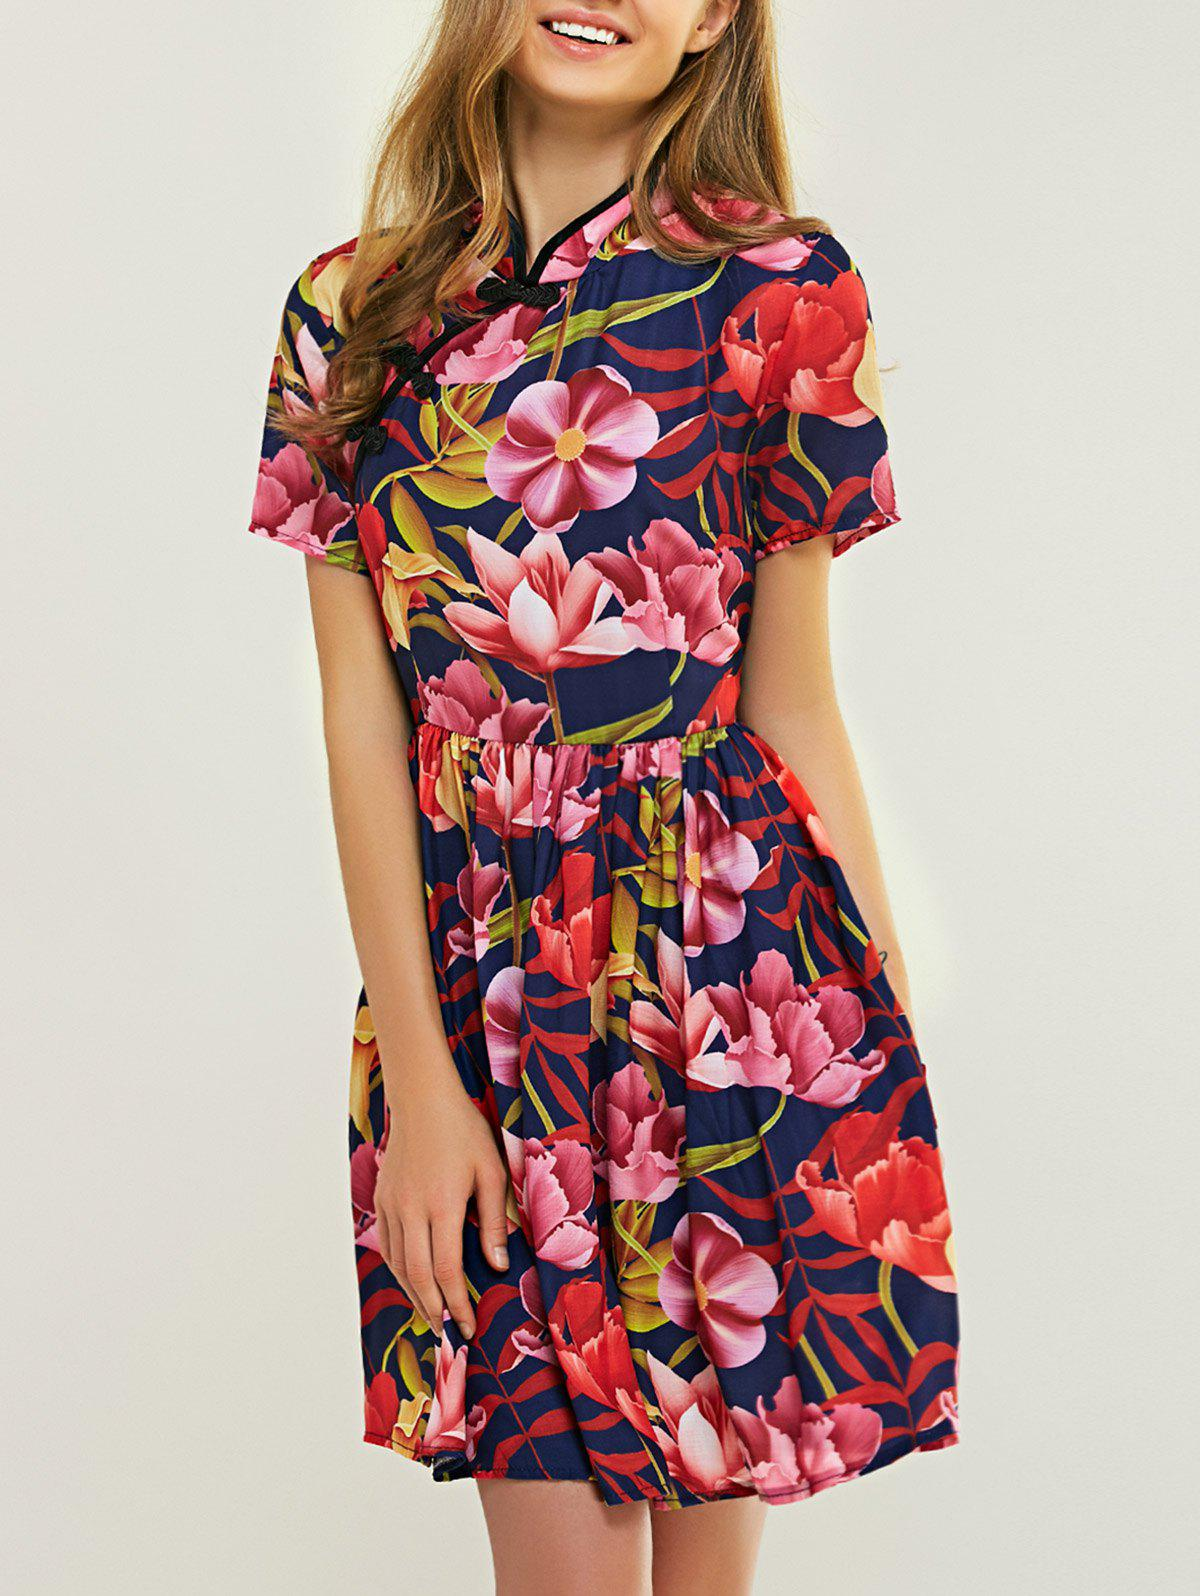 Ladylike Mandarin Collar Floral Print Fit and Flare Dress - COLORFUL 2XL